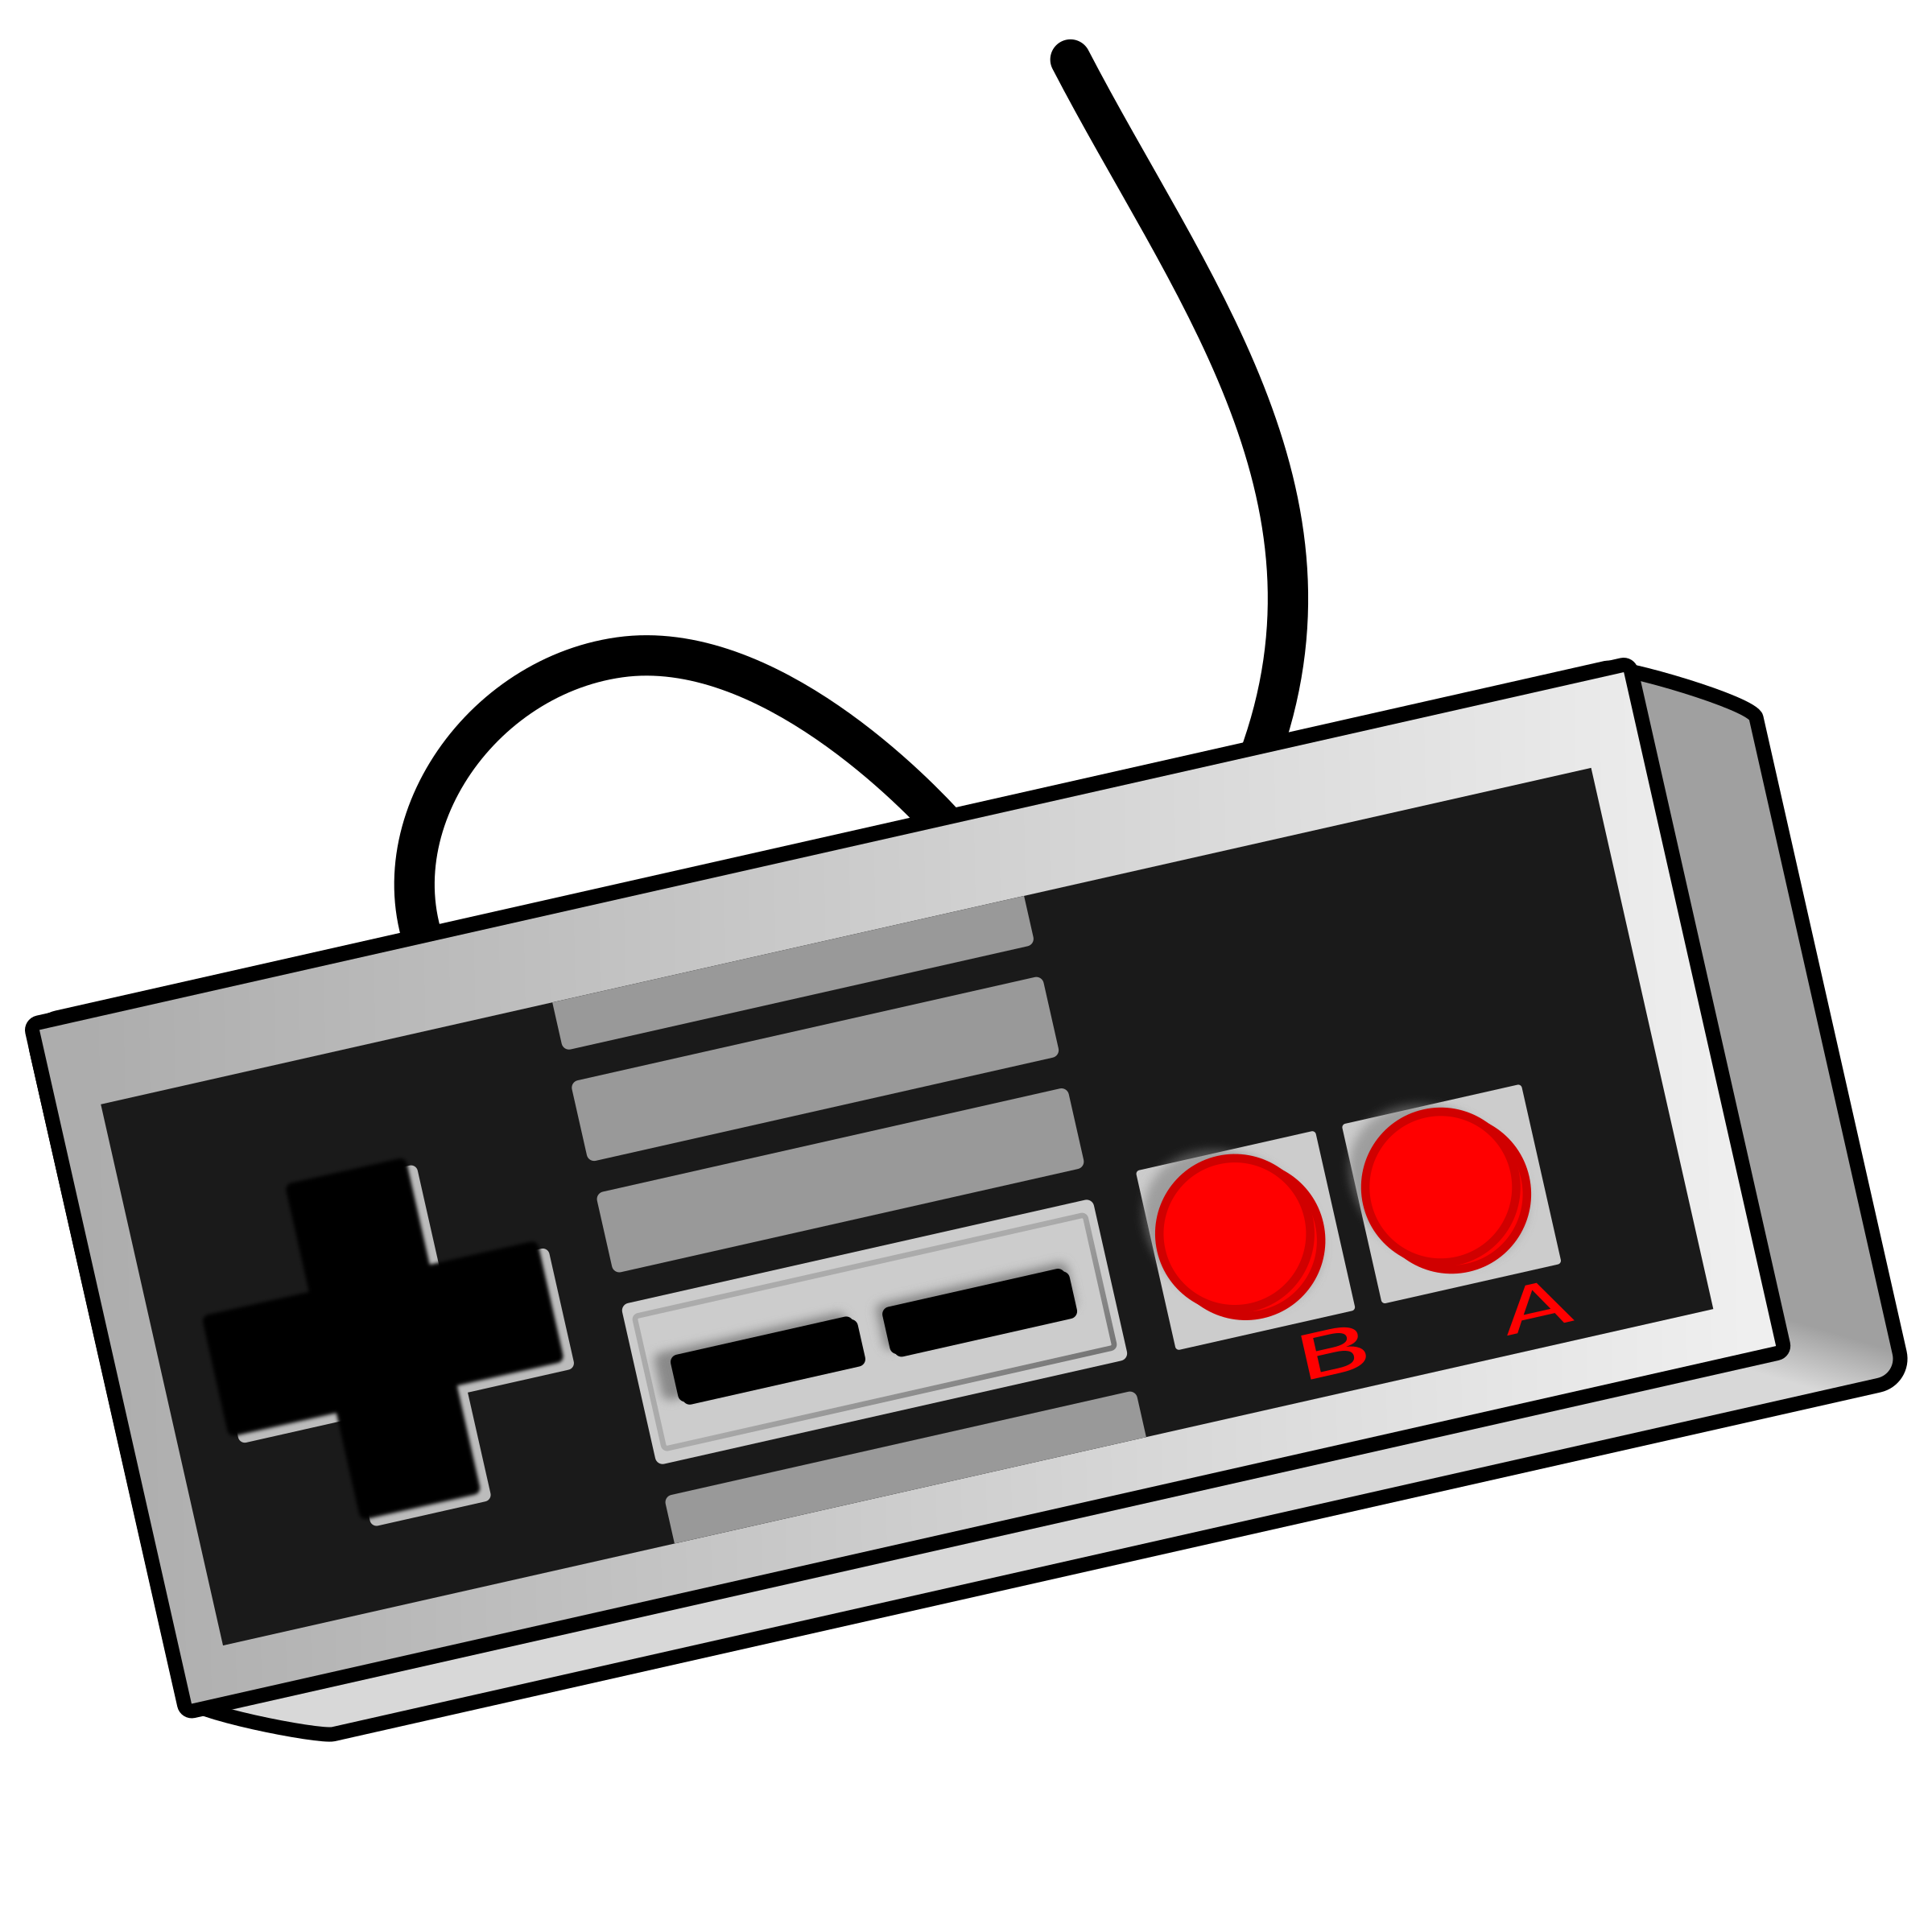 video game controllers png